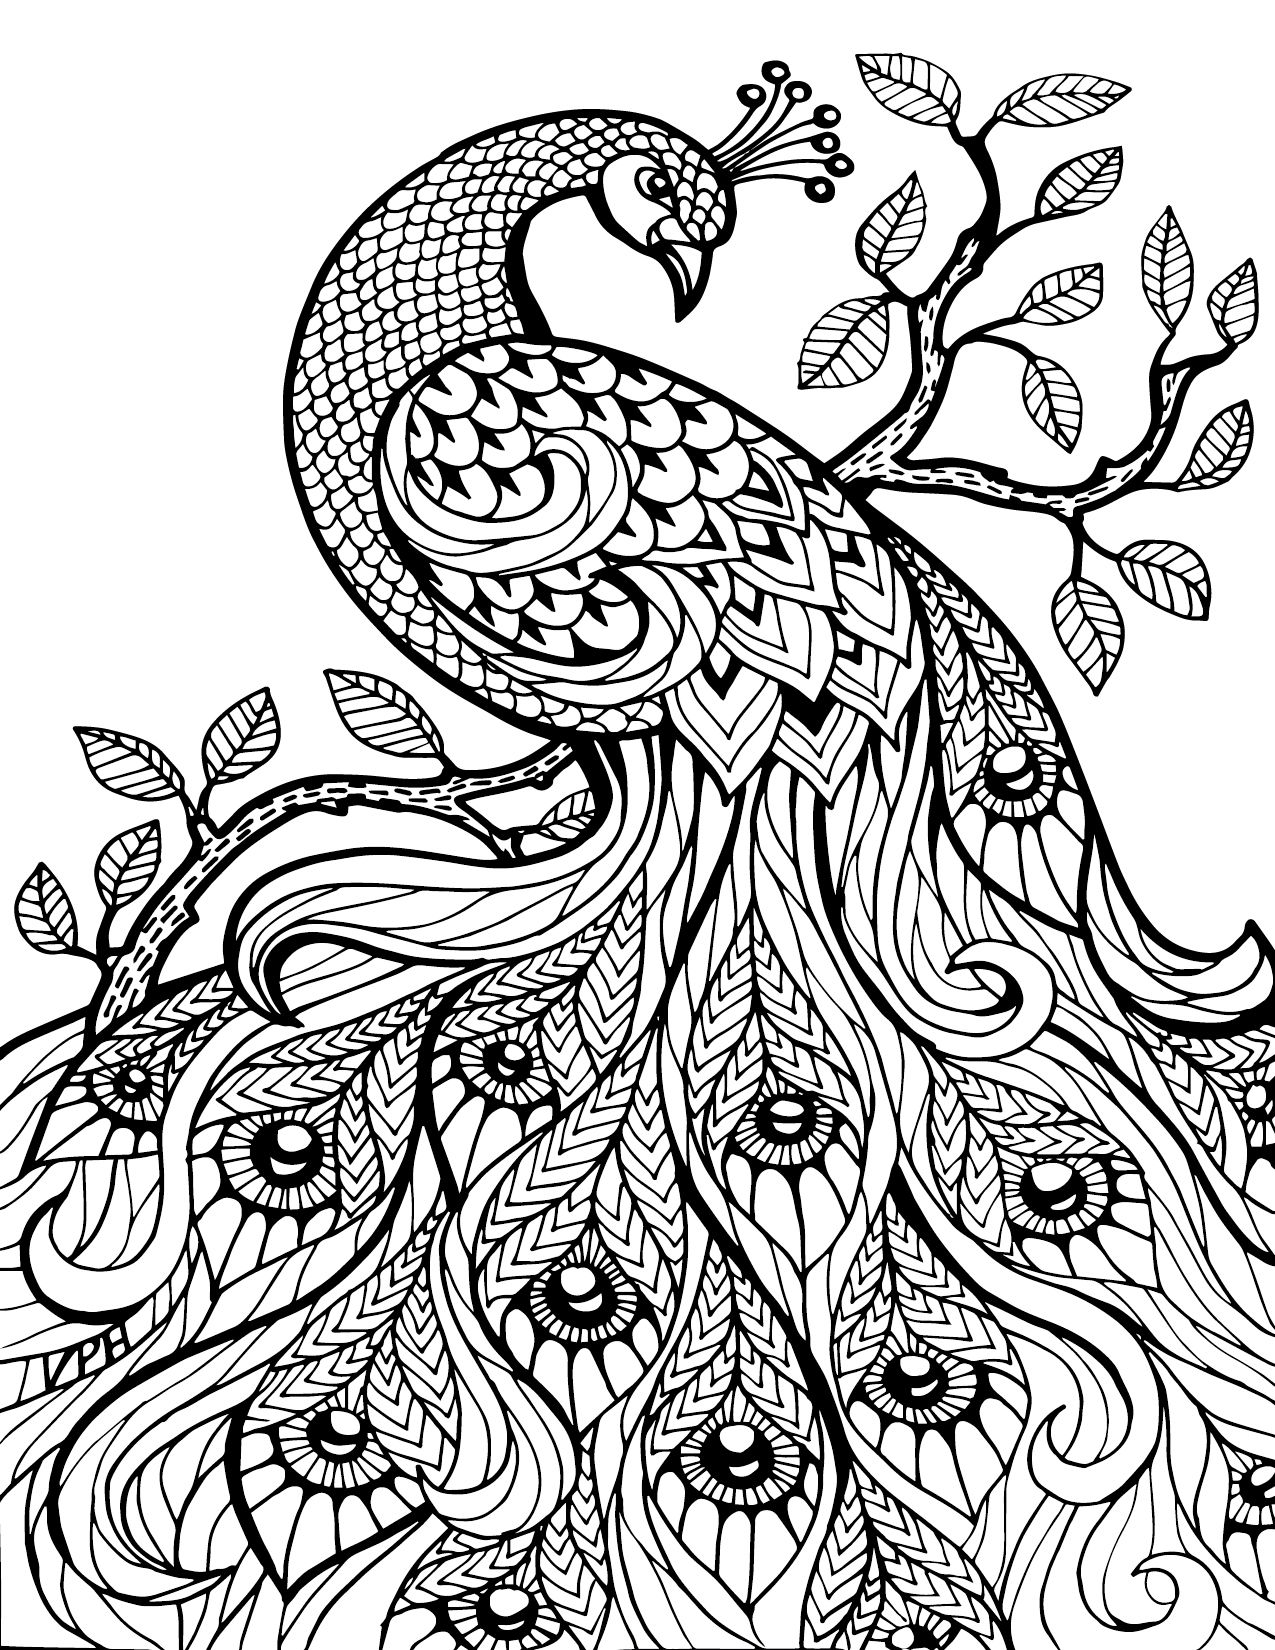 1275x1650 Free Printable Coloring Pages For Adults Only Image Art